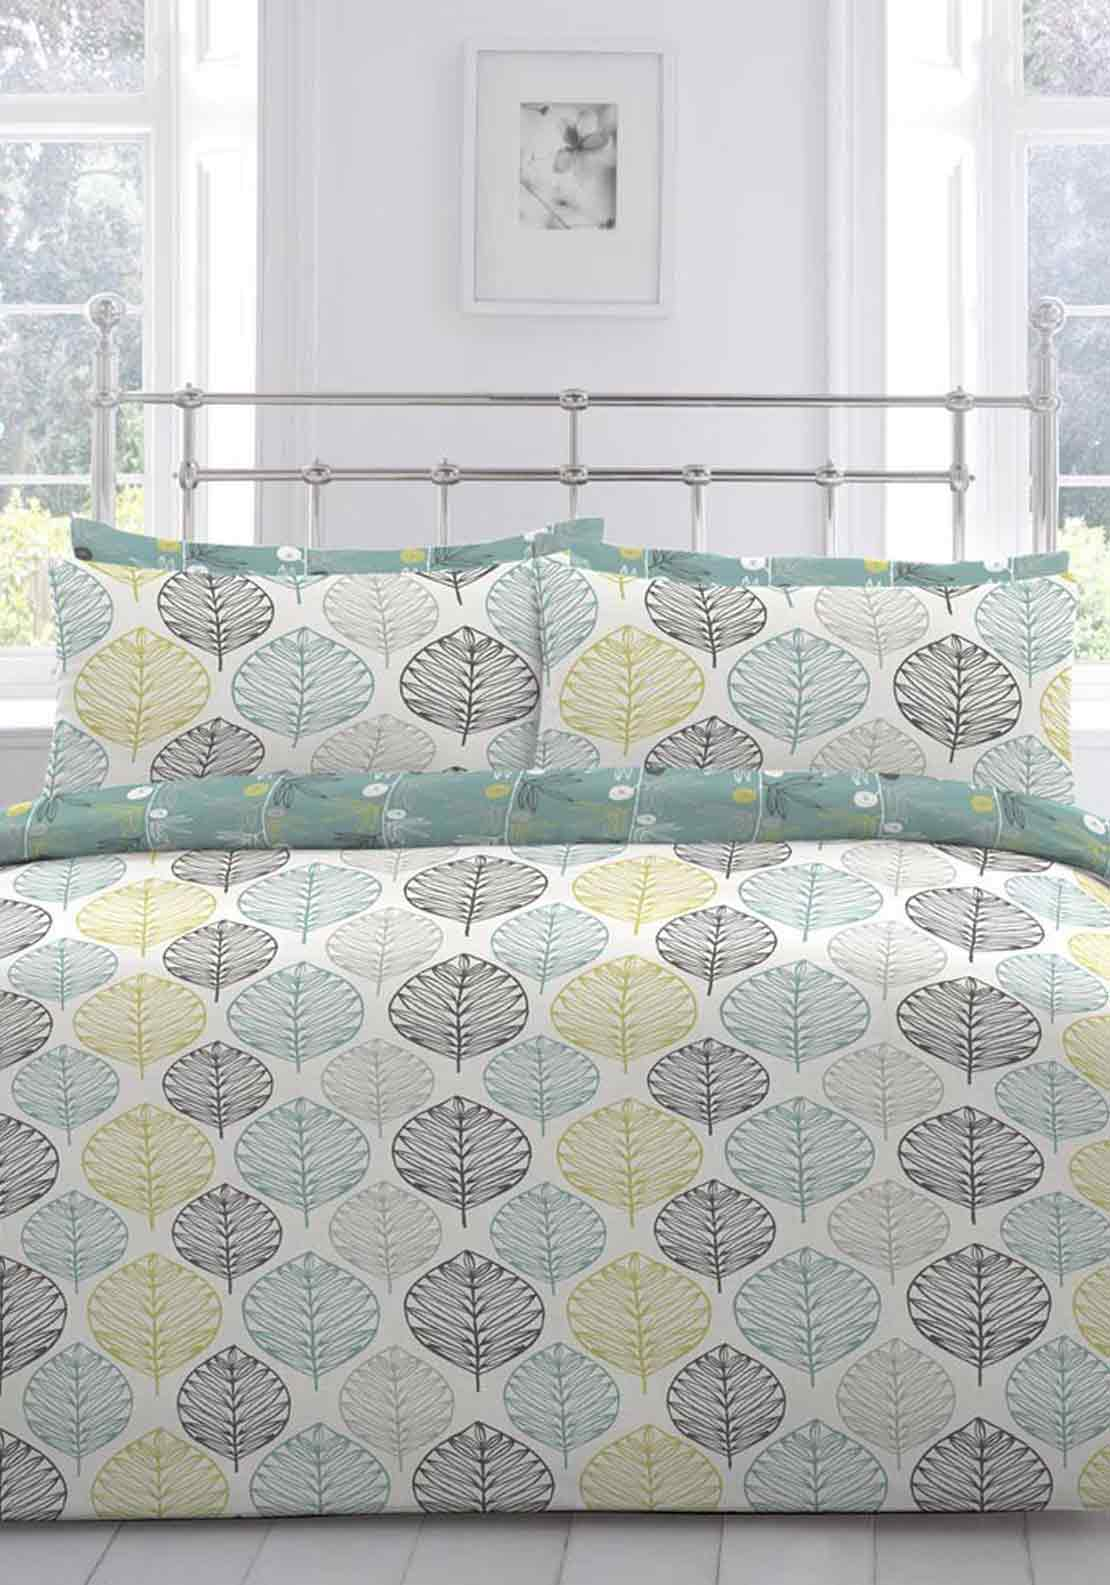 Appletree Atara Leaf Design Duvet Cover Set